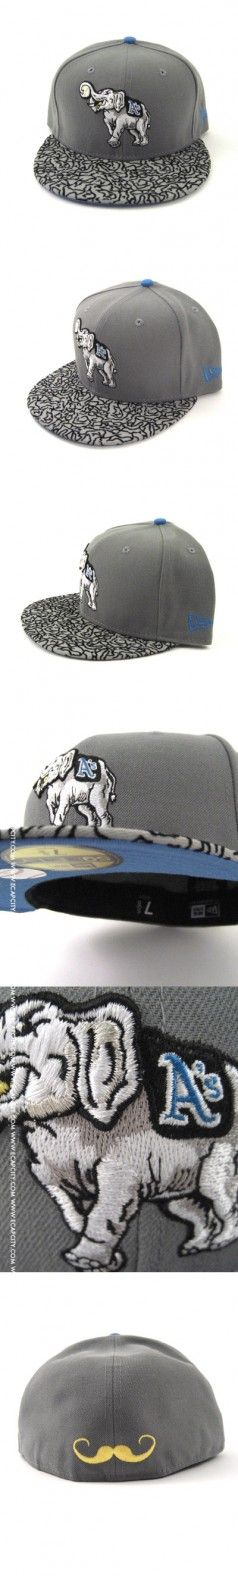 Oakland Athletics New Era Hats (SON OF MARS STEALTH) – Sneaker Related  Fitteds – 2eae75257e7